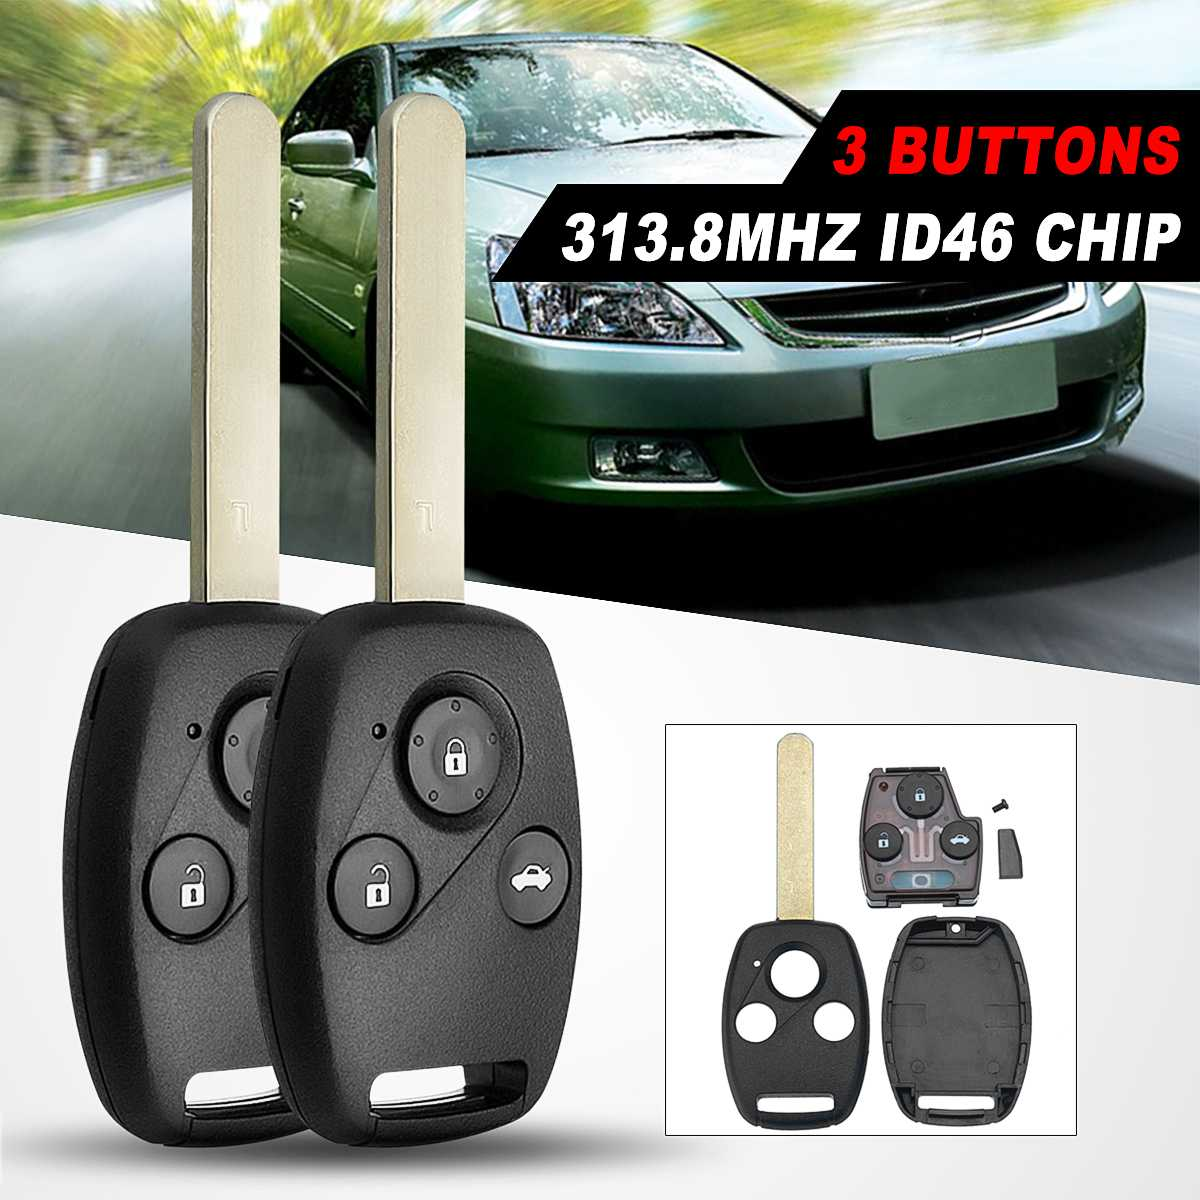 2/3 Buttons 313.8Mhz Car <font><b>Remote</b></font> Key Fob Case Shell With ID-46 Chip For <font><b>Honda</b></font> For Accord/Civic/<font><b>CRV</b></font> 2003 04 05 06 2007 <font><b>Remote</b></font> Key image